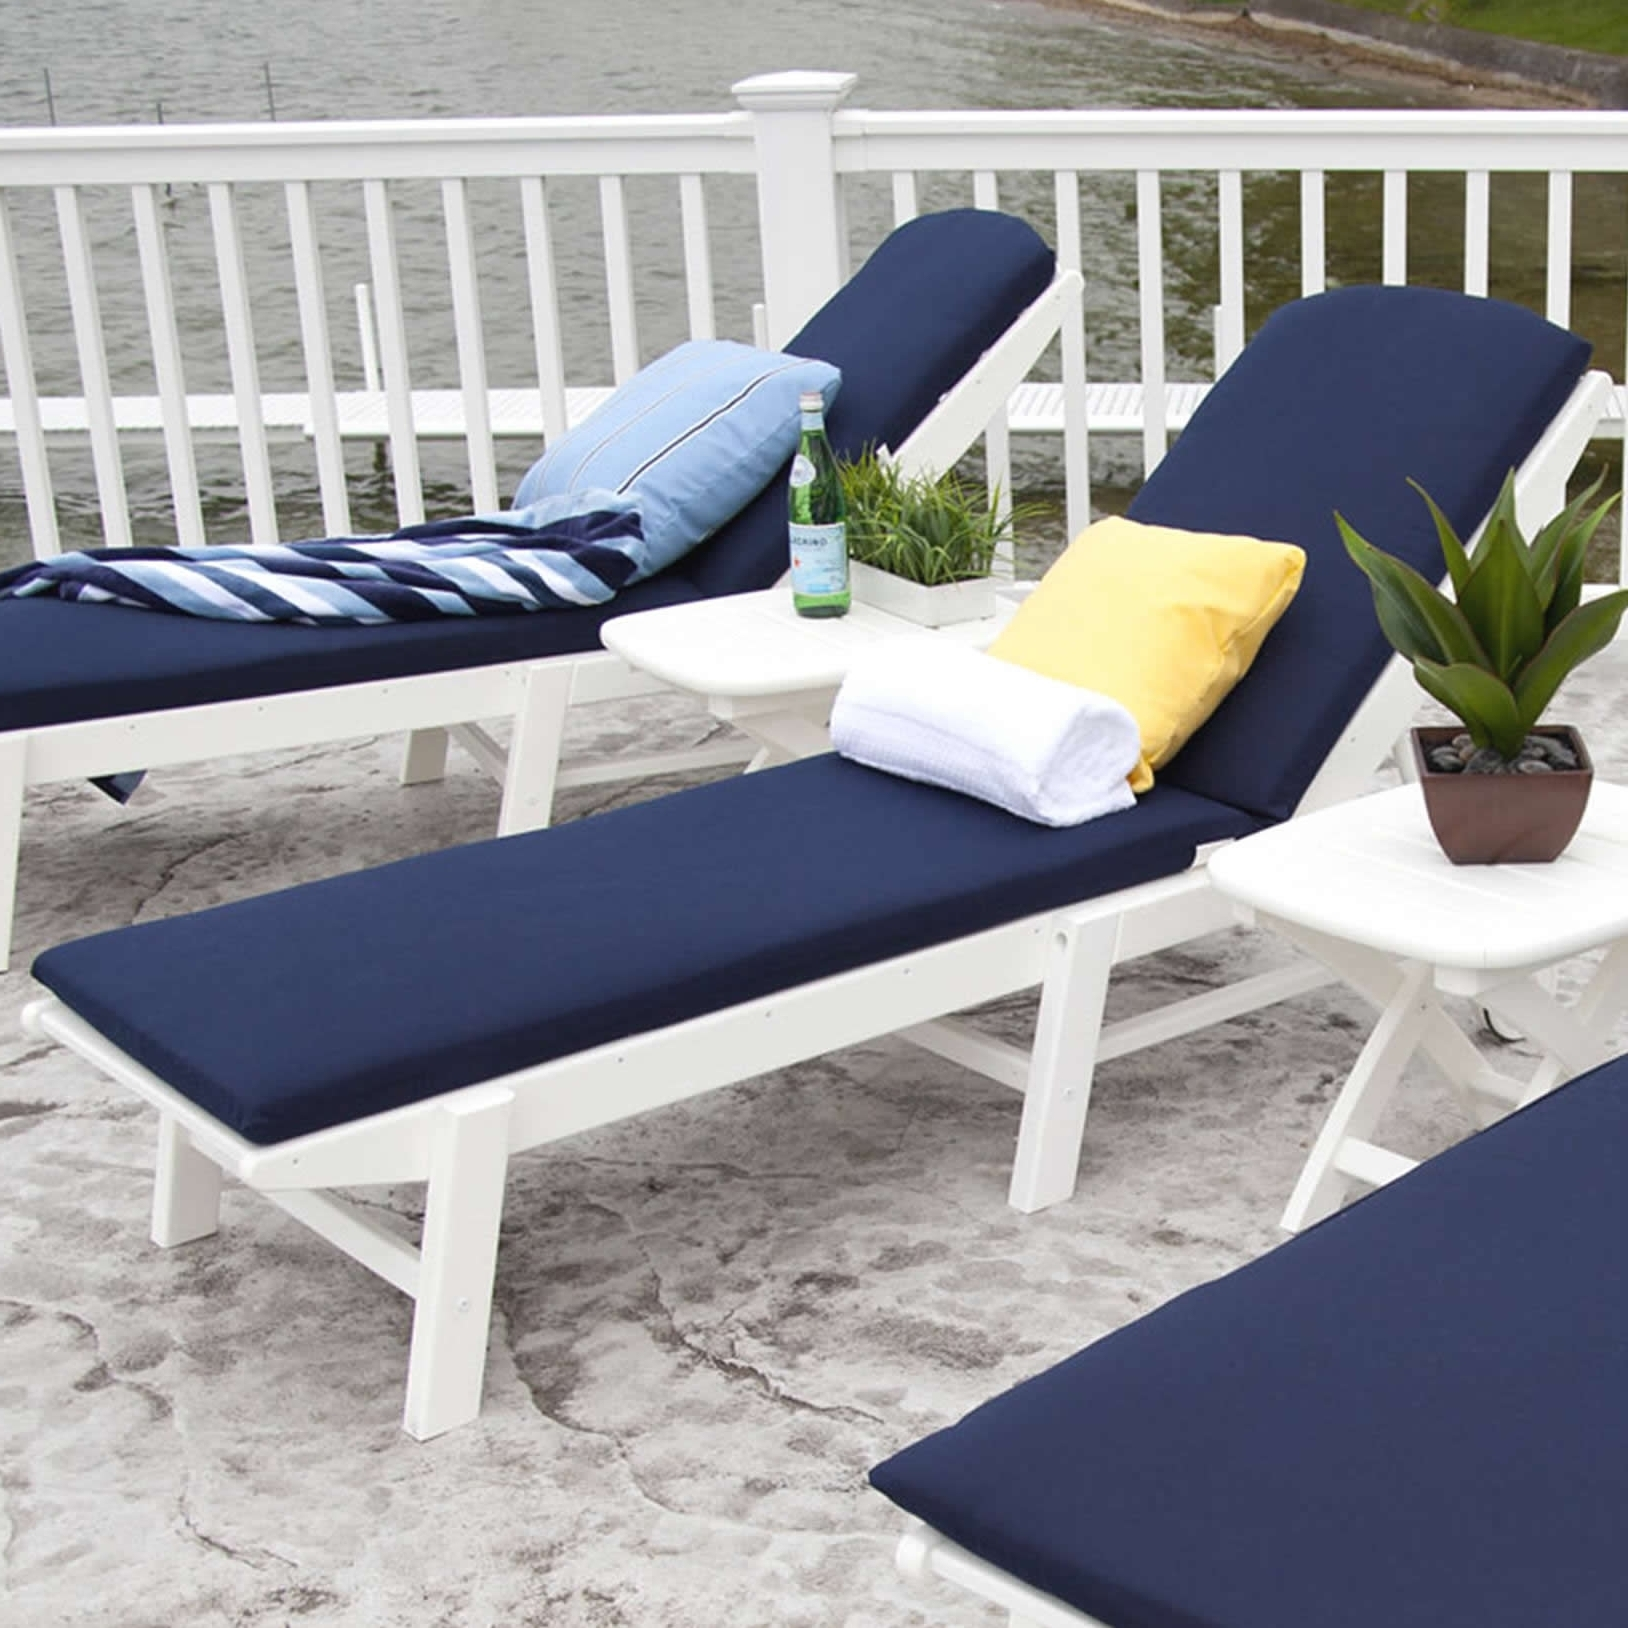 Armless Outdoor Chaise Lounge Chairs Within Fashionable Polywood Nautical Chaise Lounge Cushions (View 4 of 15)